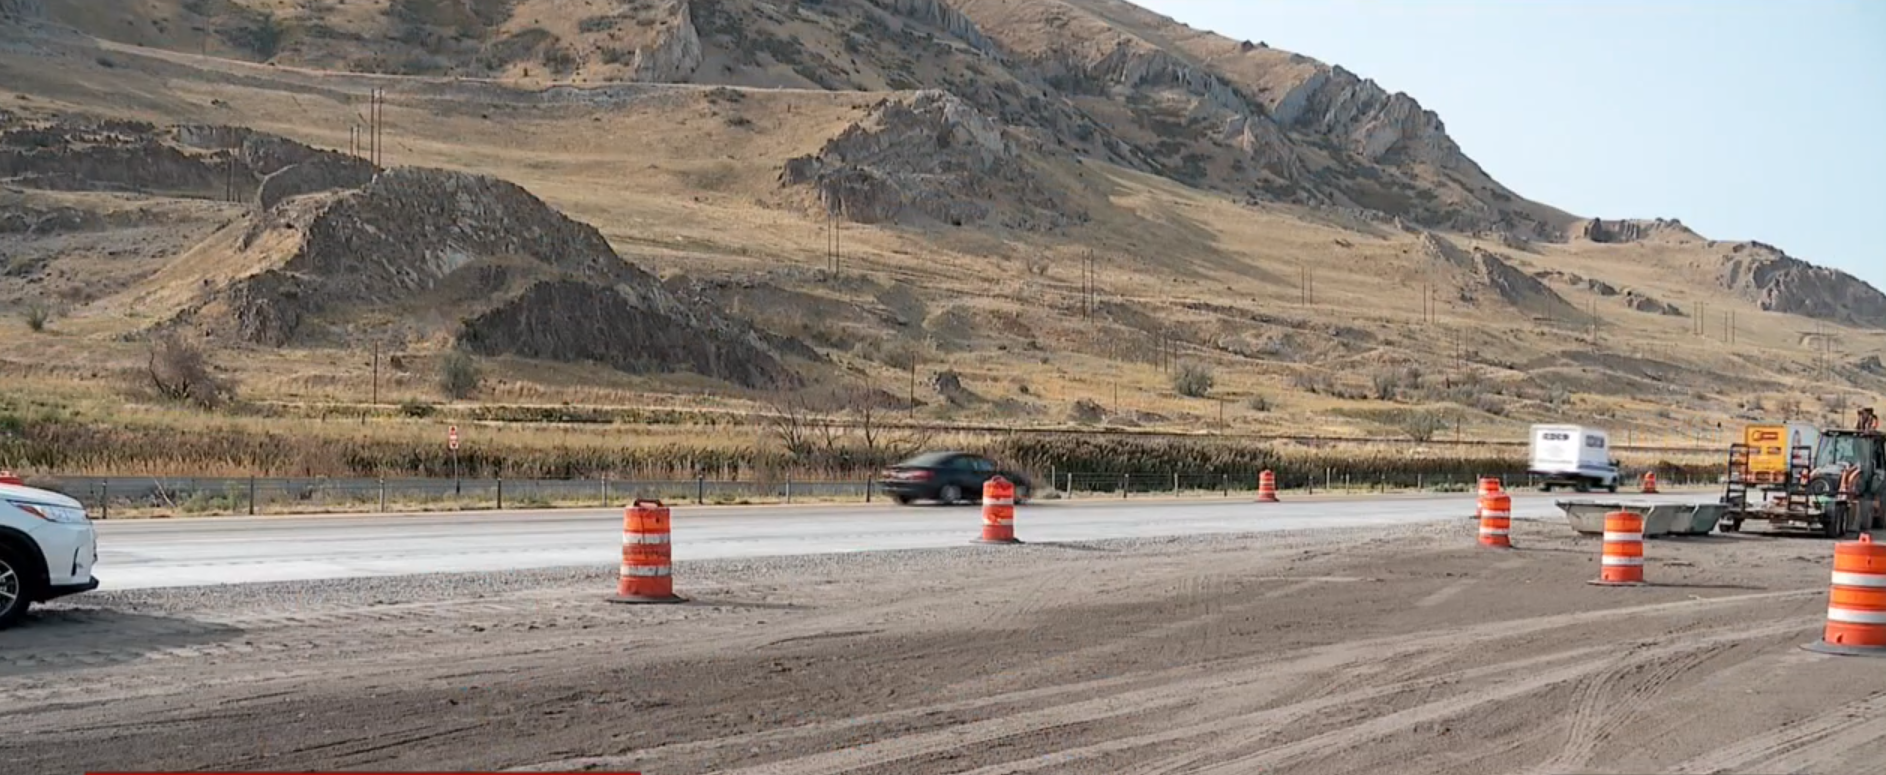 New I-80 westbound lane in Tooele County opens 6 months ahead of schedule (KUTV)